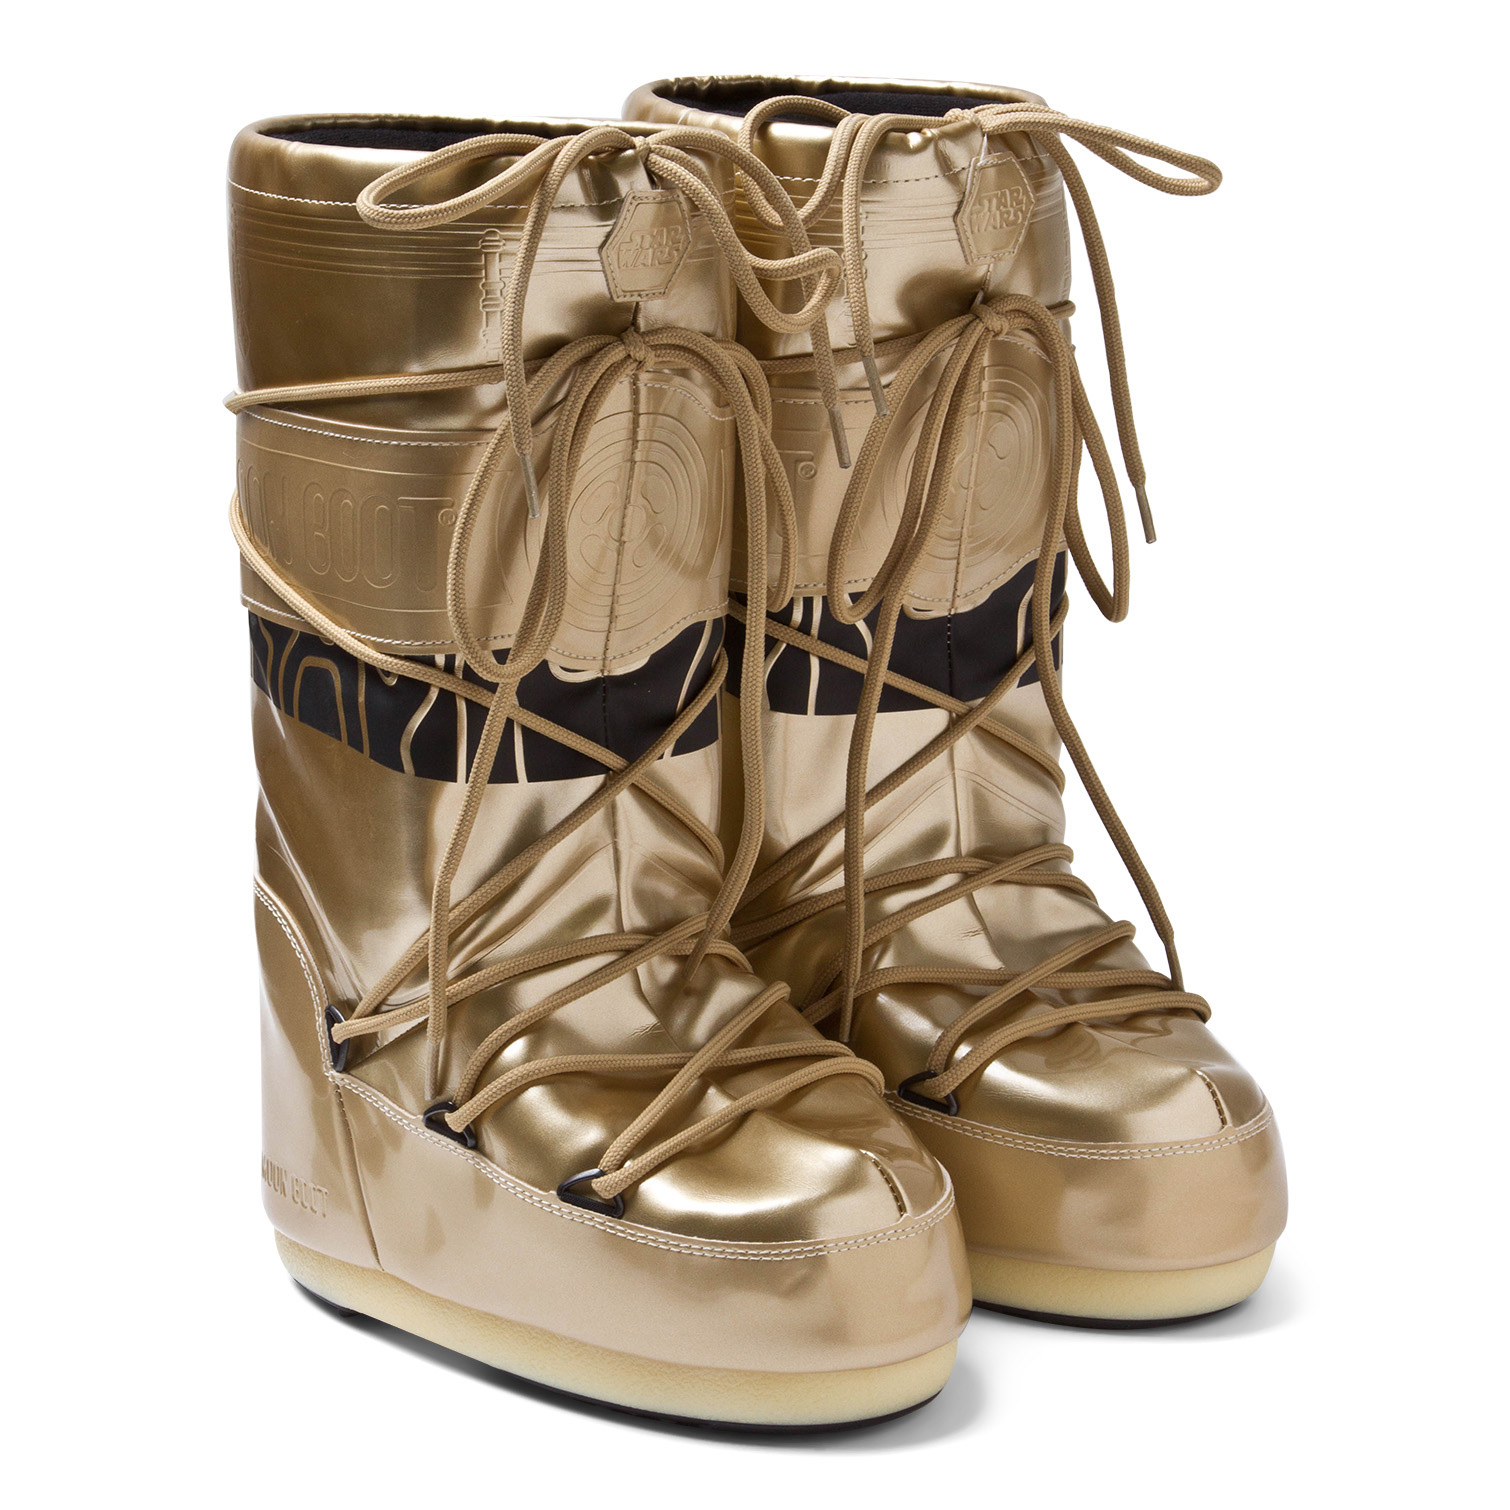 AlexandAlexa-Moon-Boot-Star-Wars-C-3PO-Moon-Boots-£125